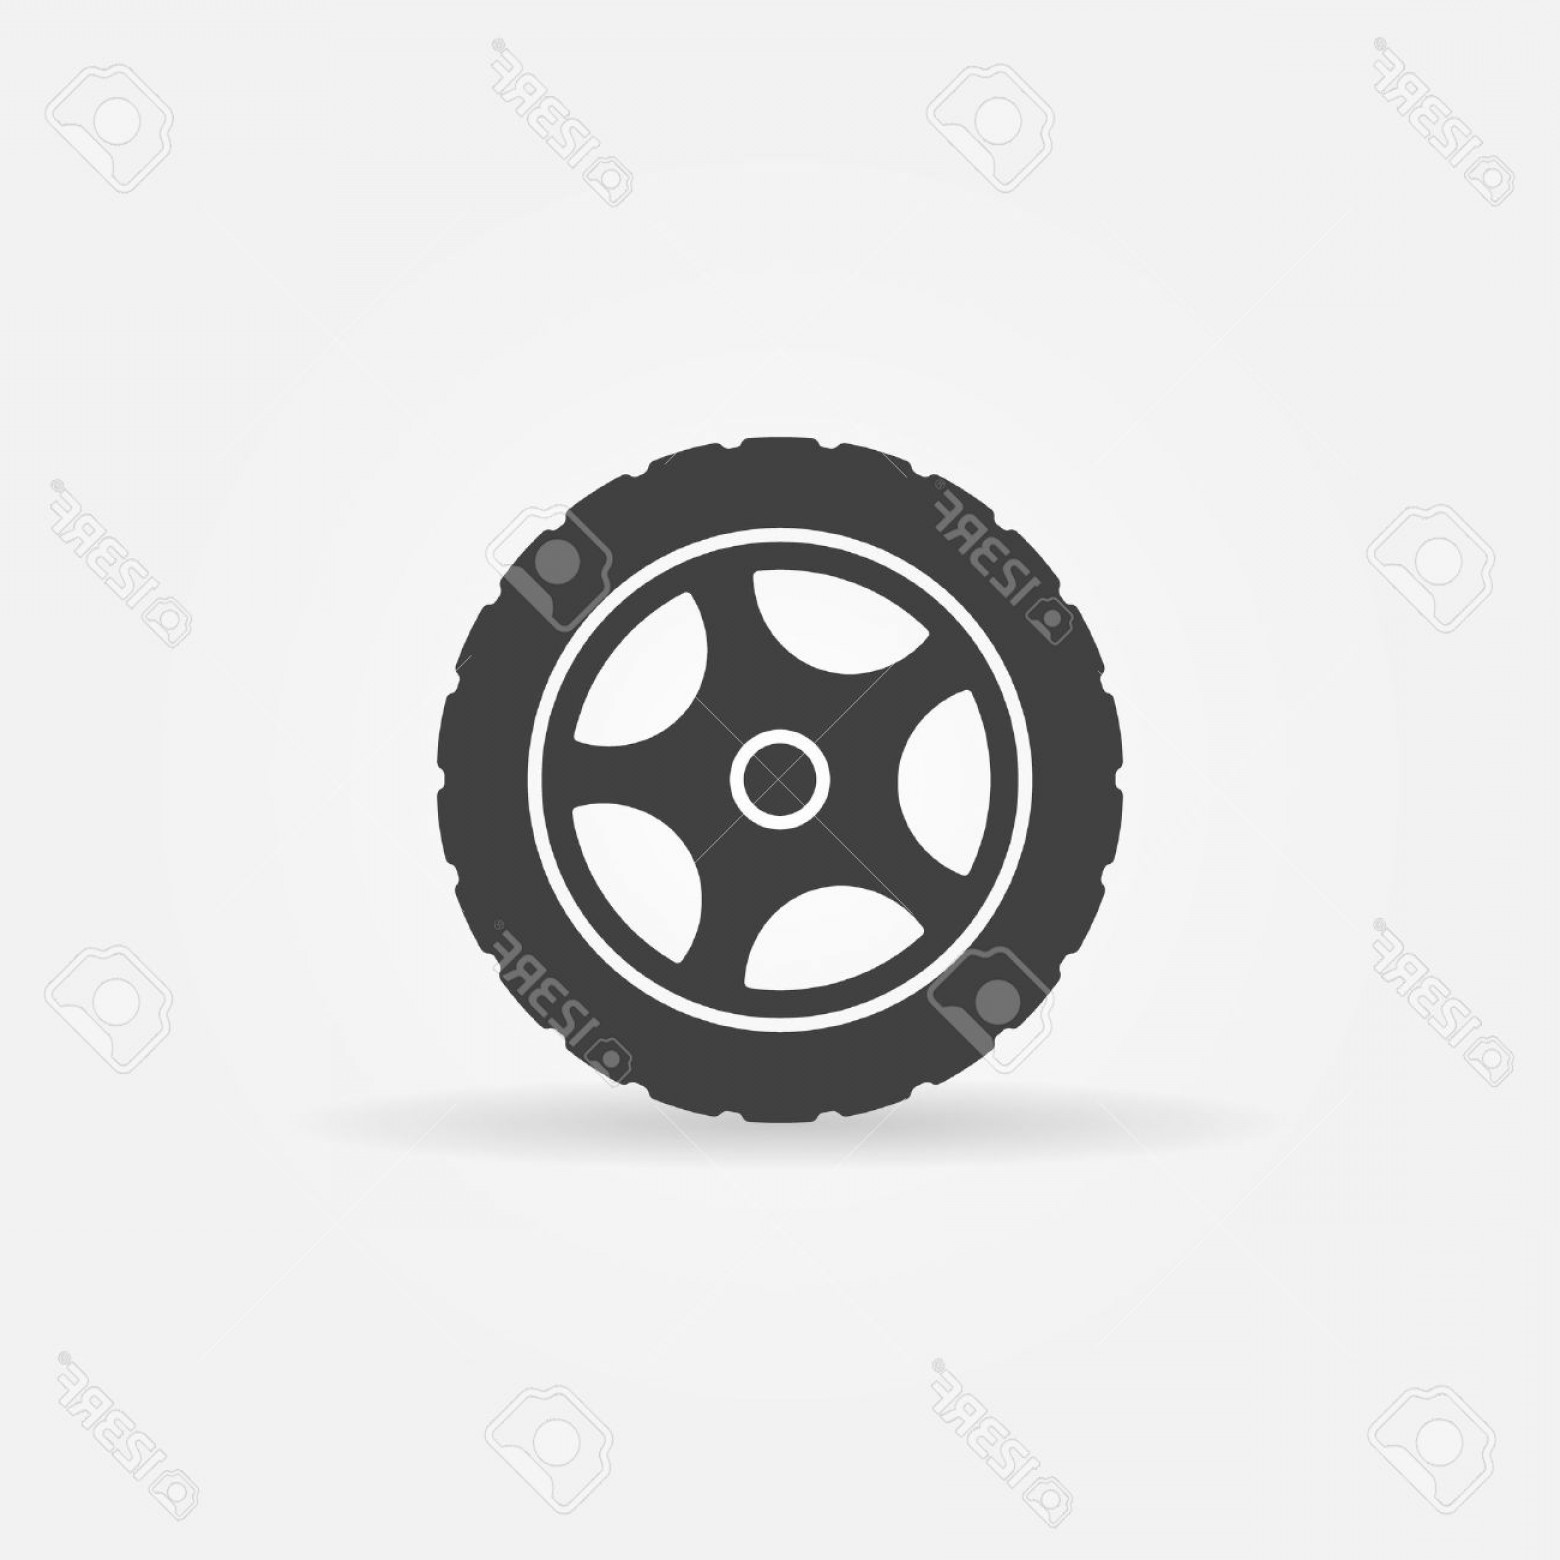 Tire Icon Vector: Photostock Vector Tire Icon Or Logo Vector Black Transportation Symbol